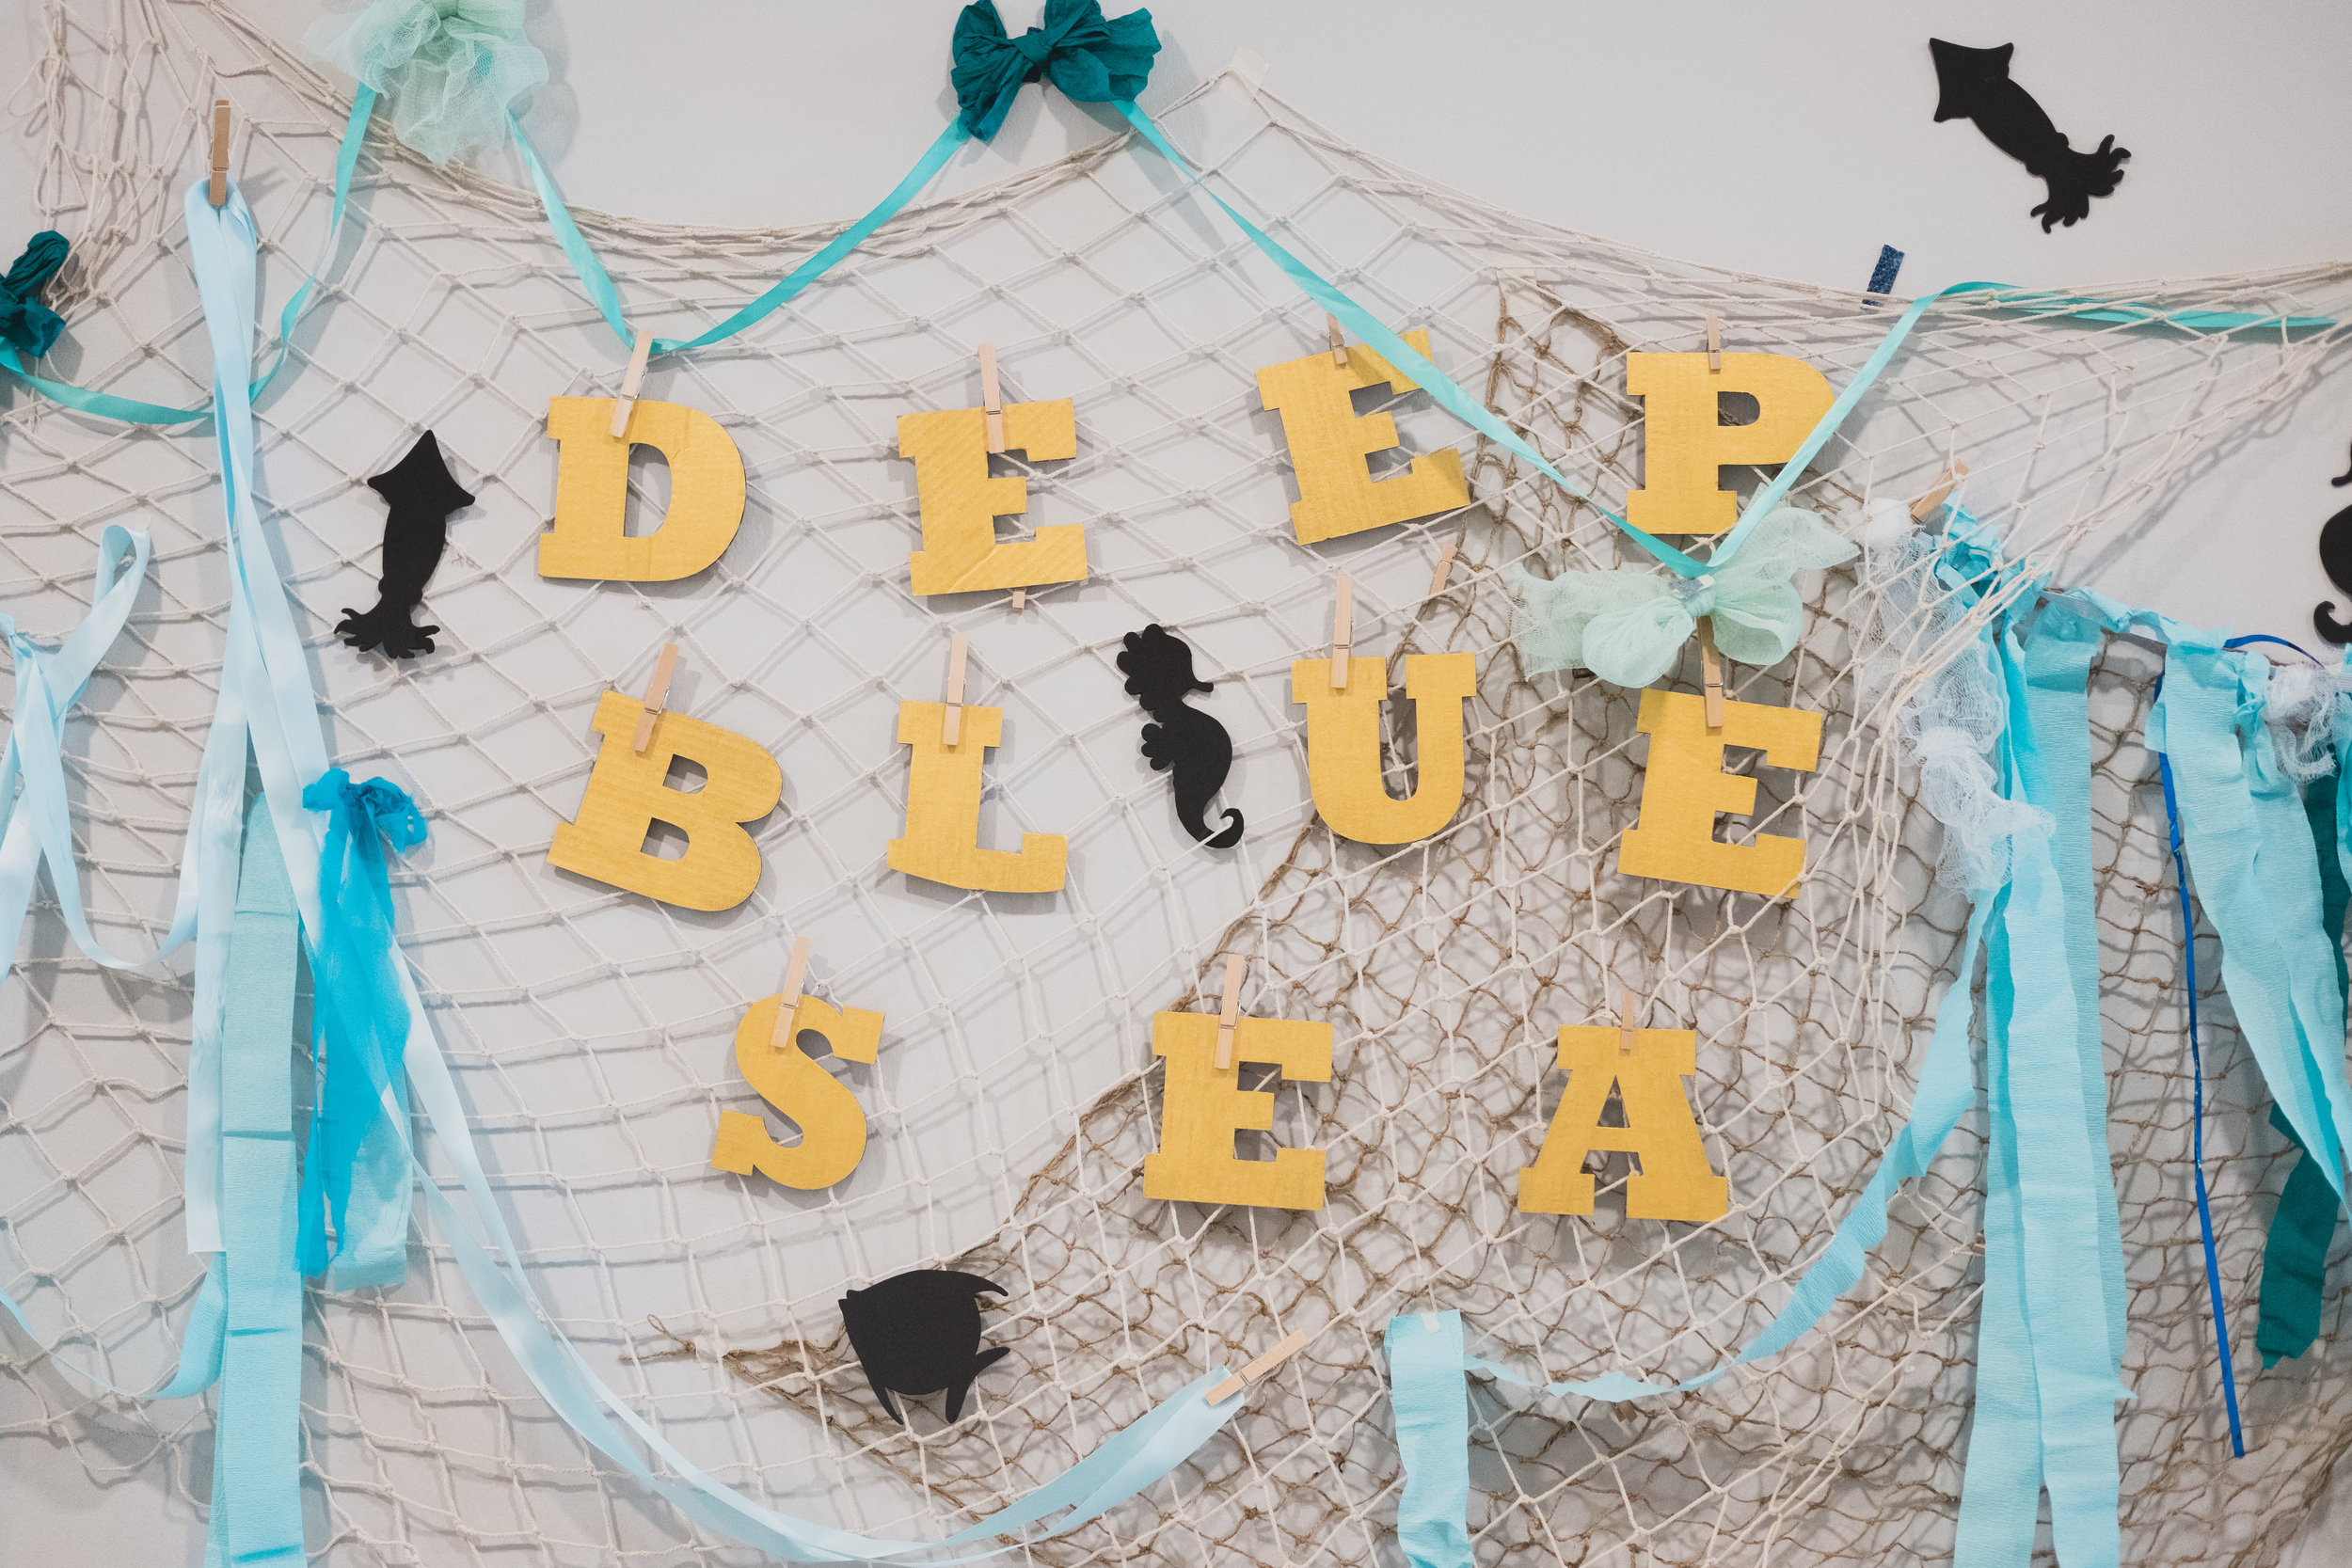 Backdrop and artwork for the Deep Blue Sea performance space.